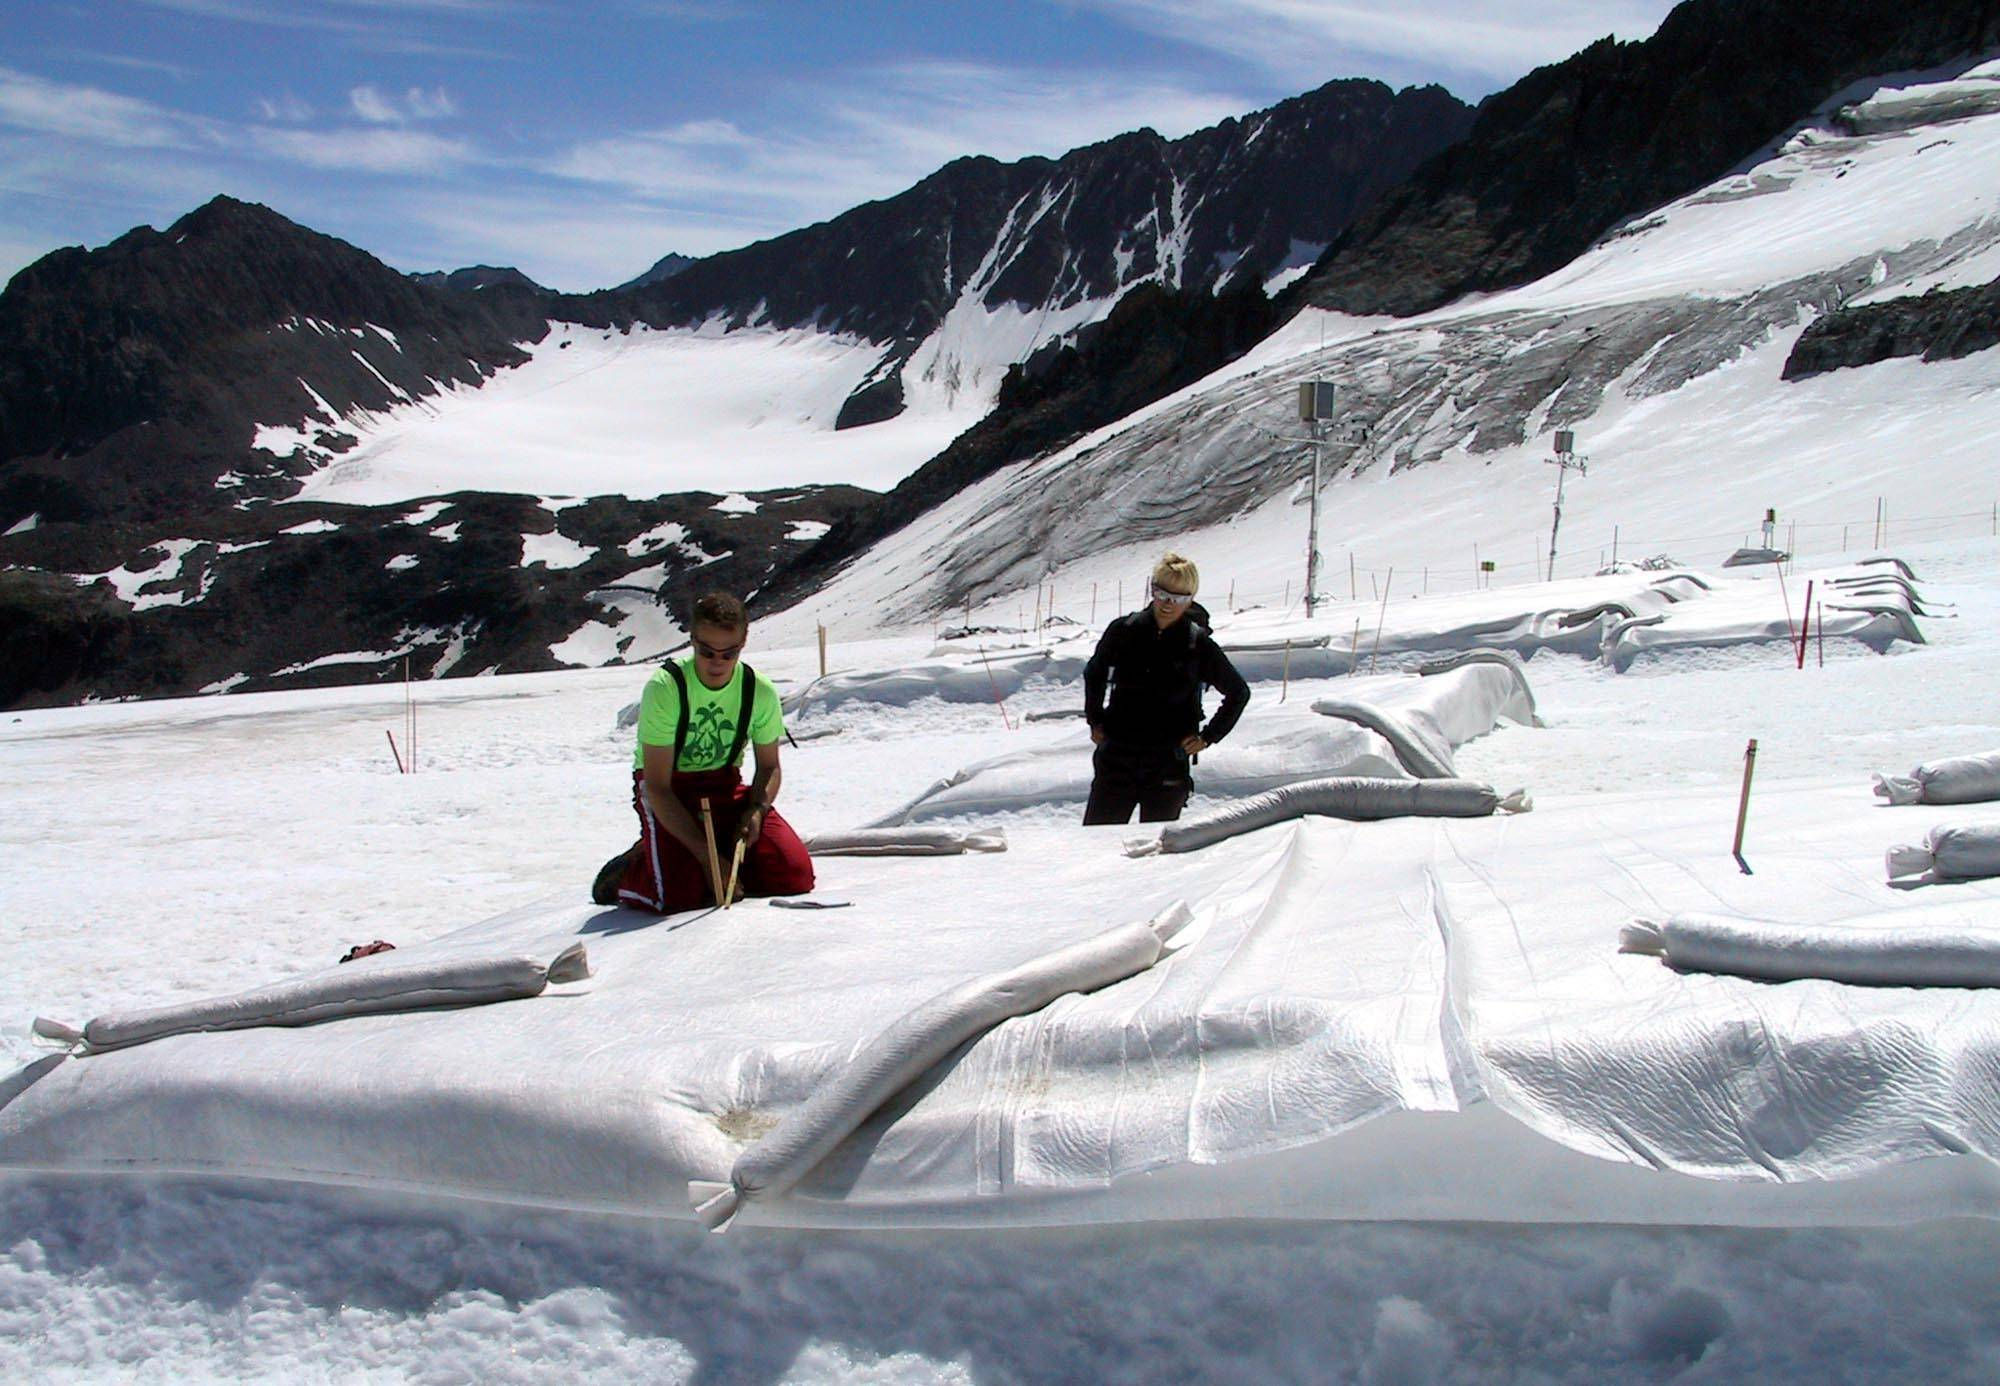 In this July 4, 2005 file photo Marc Olefs, left, and Andrea Fischer, researchers from the Innsbruck University check a field covered with white polyethylene against the backdrop of majestic jagged peaks at Eisgrat (Ice Spine) skiing station on Stubai glacier near the village of Neustift im Stubaital in the alpine Austrian province of Tyrol.